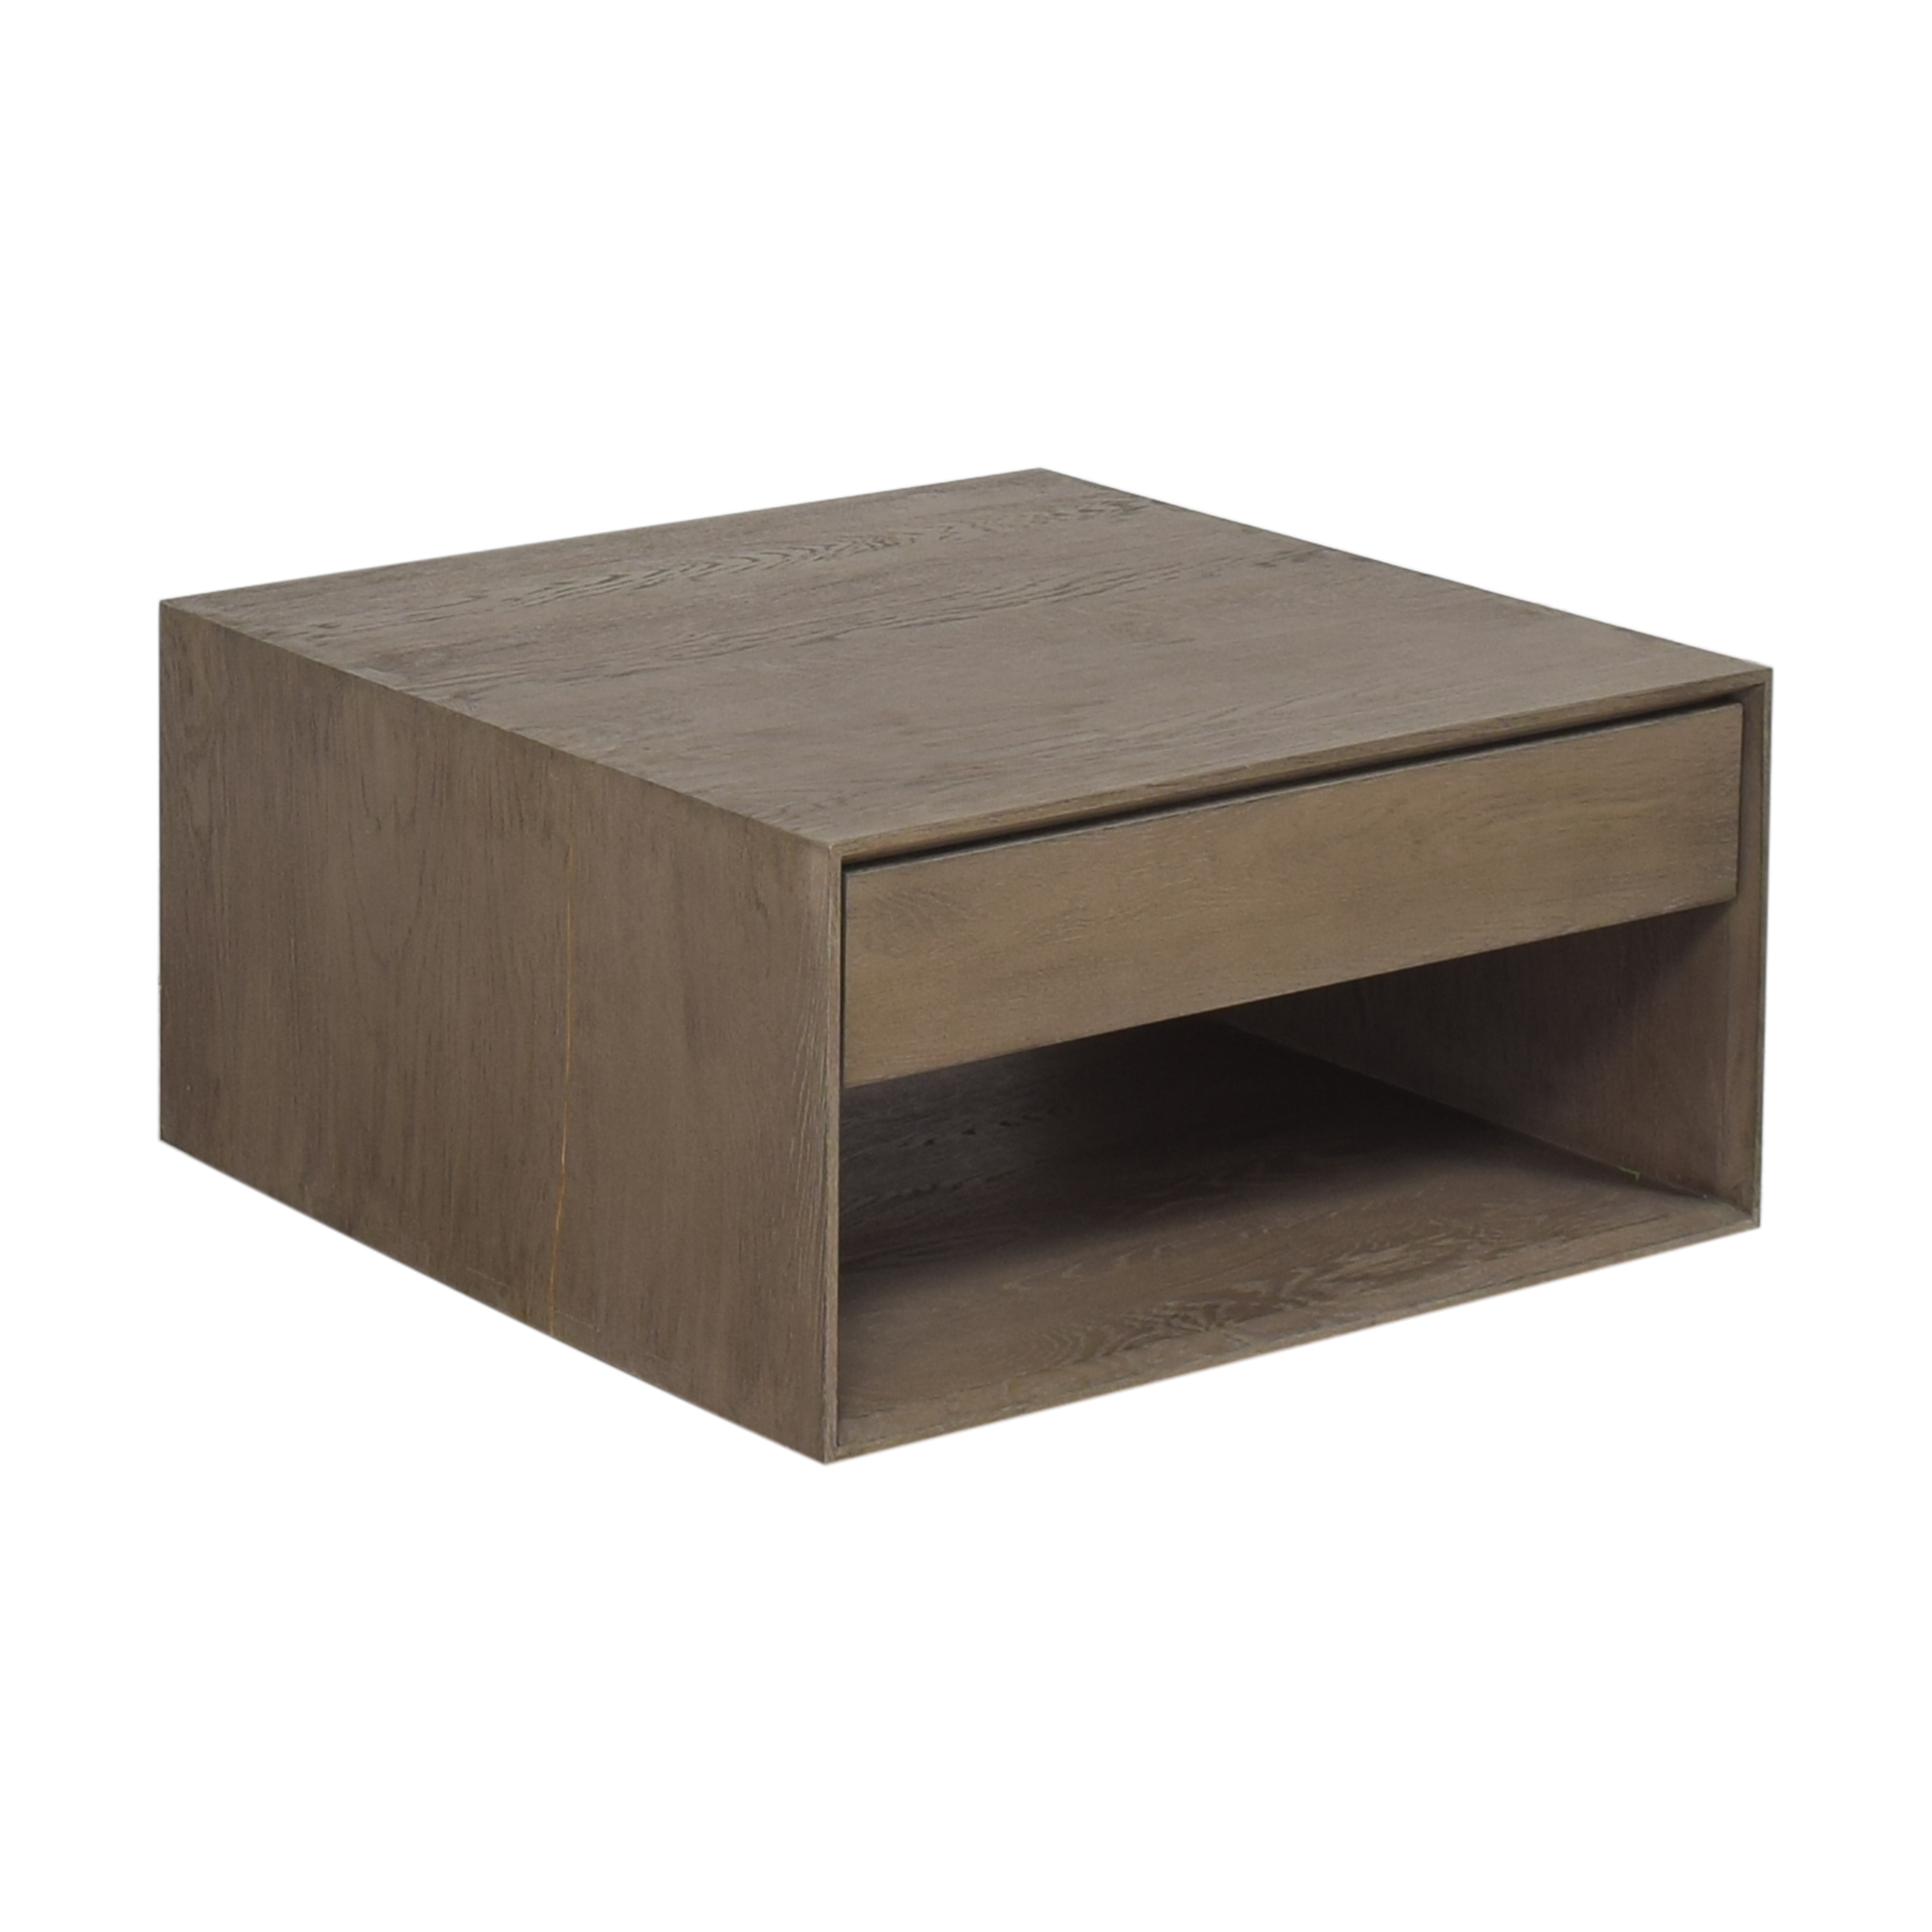 Crate & Barrel Crate & Barrel Ethan Square Coffee Table used